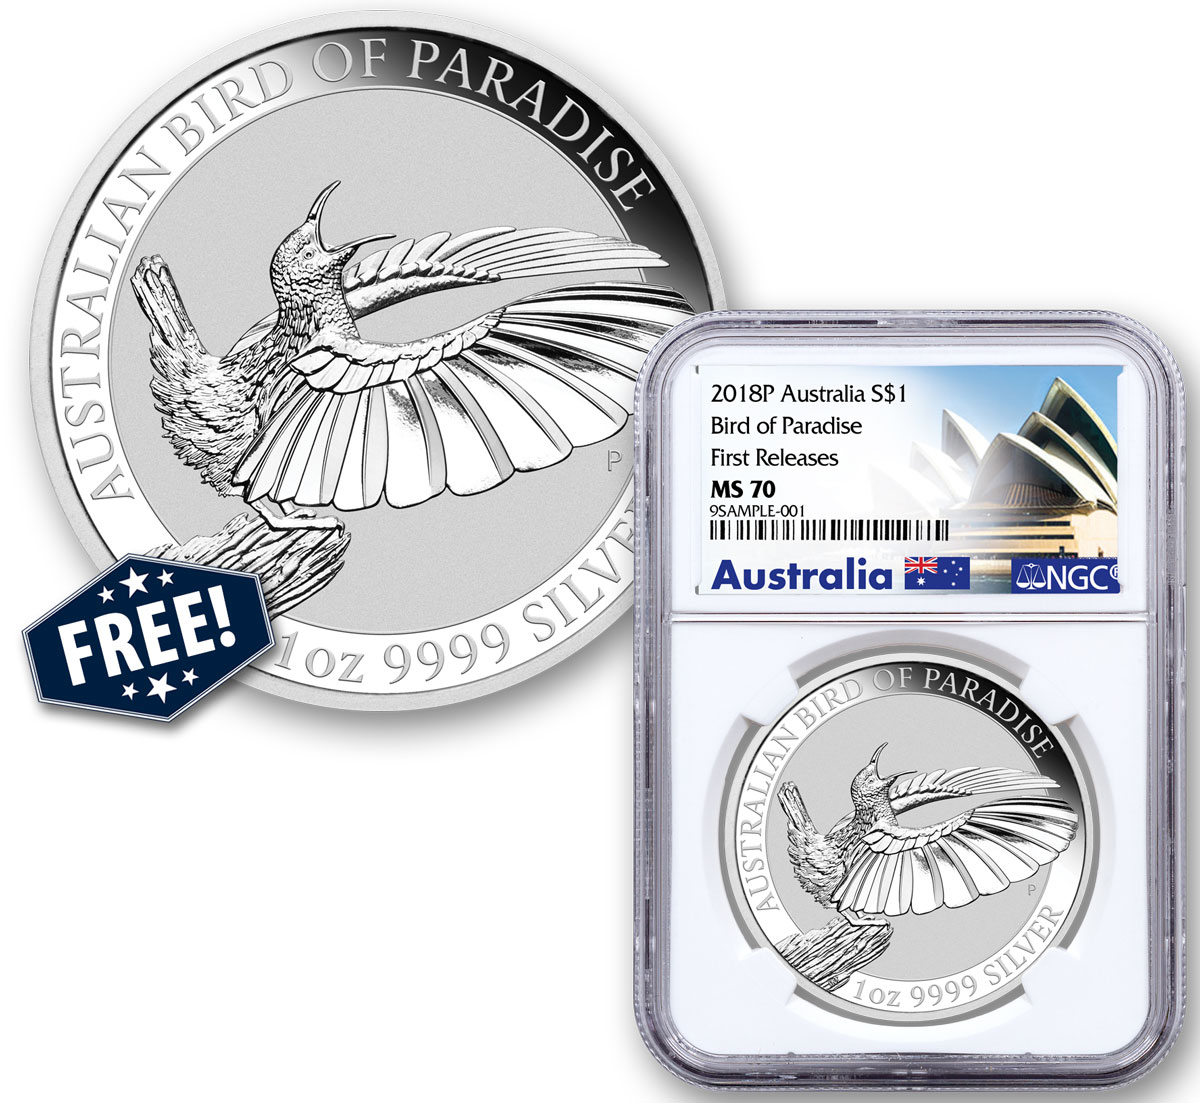 2018-P Australia 1 oz Silver Bird of Paradise $1 Coin NGC MS70 FR Exclusive Australia Label + FREE 2018-P Australia 1oz Silver Bird of Paradise $1 Coin GEM BU